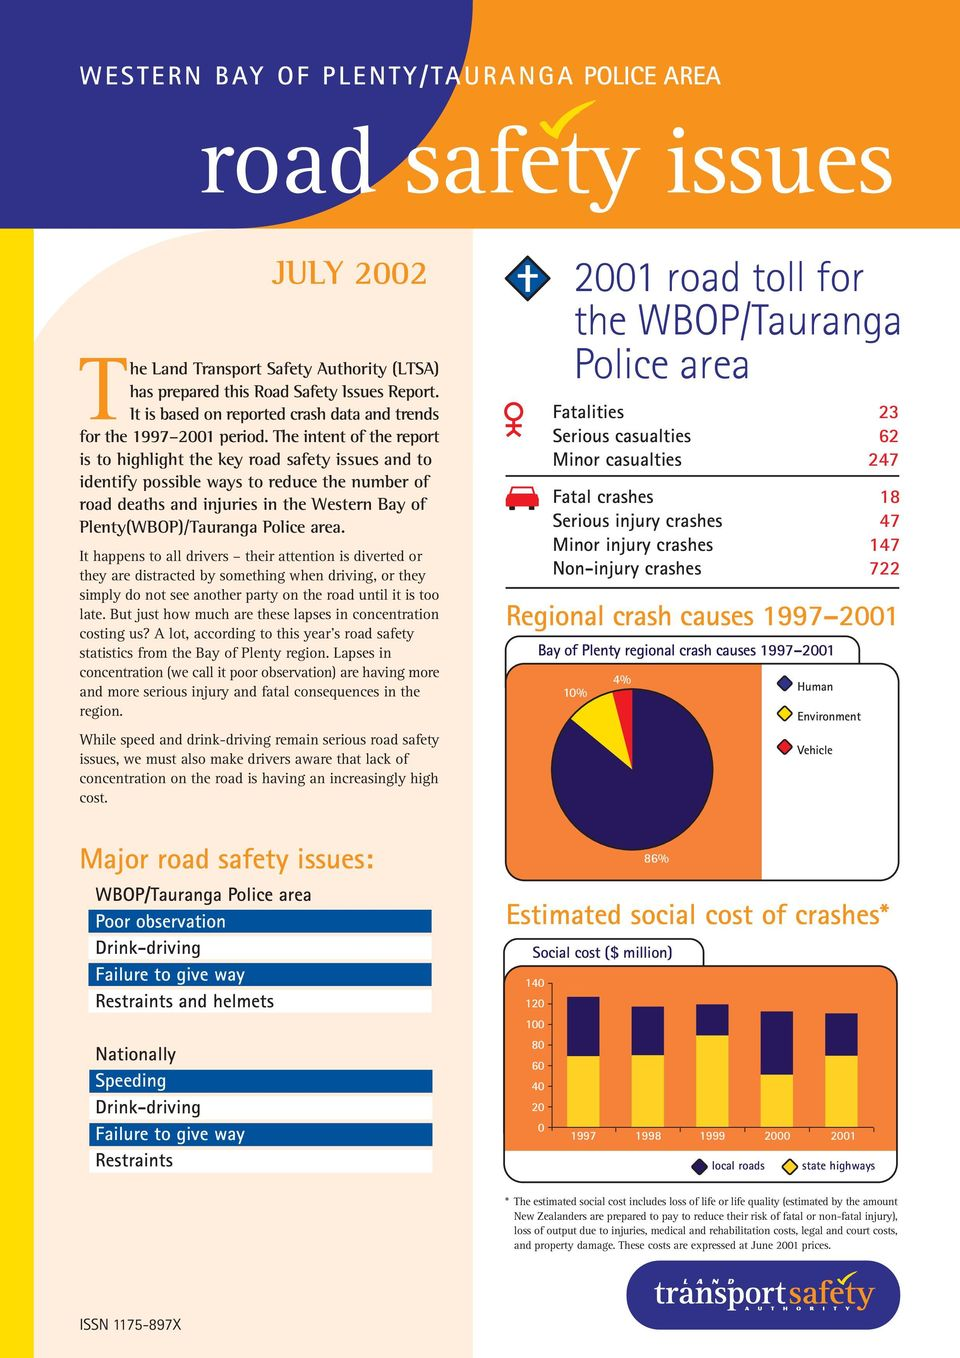 The intent of the report is to highlight the key road safety issues and to identify possible ways to reduce the number of road deaths and injuries in the Western Bay of Plenty(WBOP)/Tauranga Police